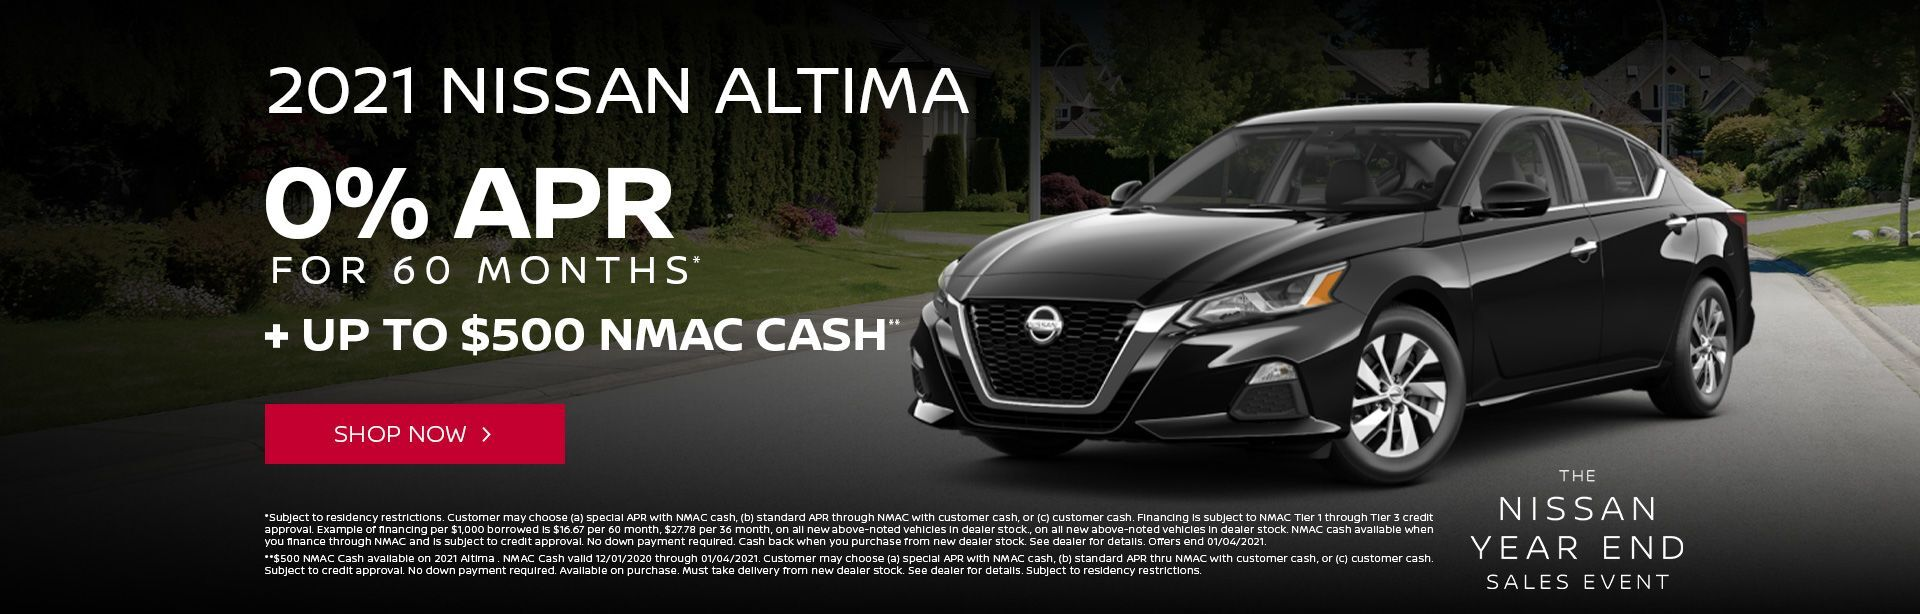 Year End Altima